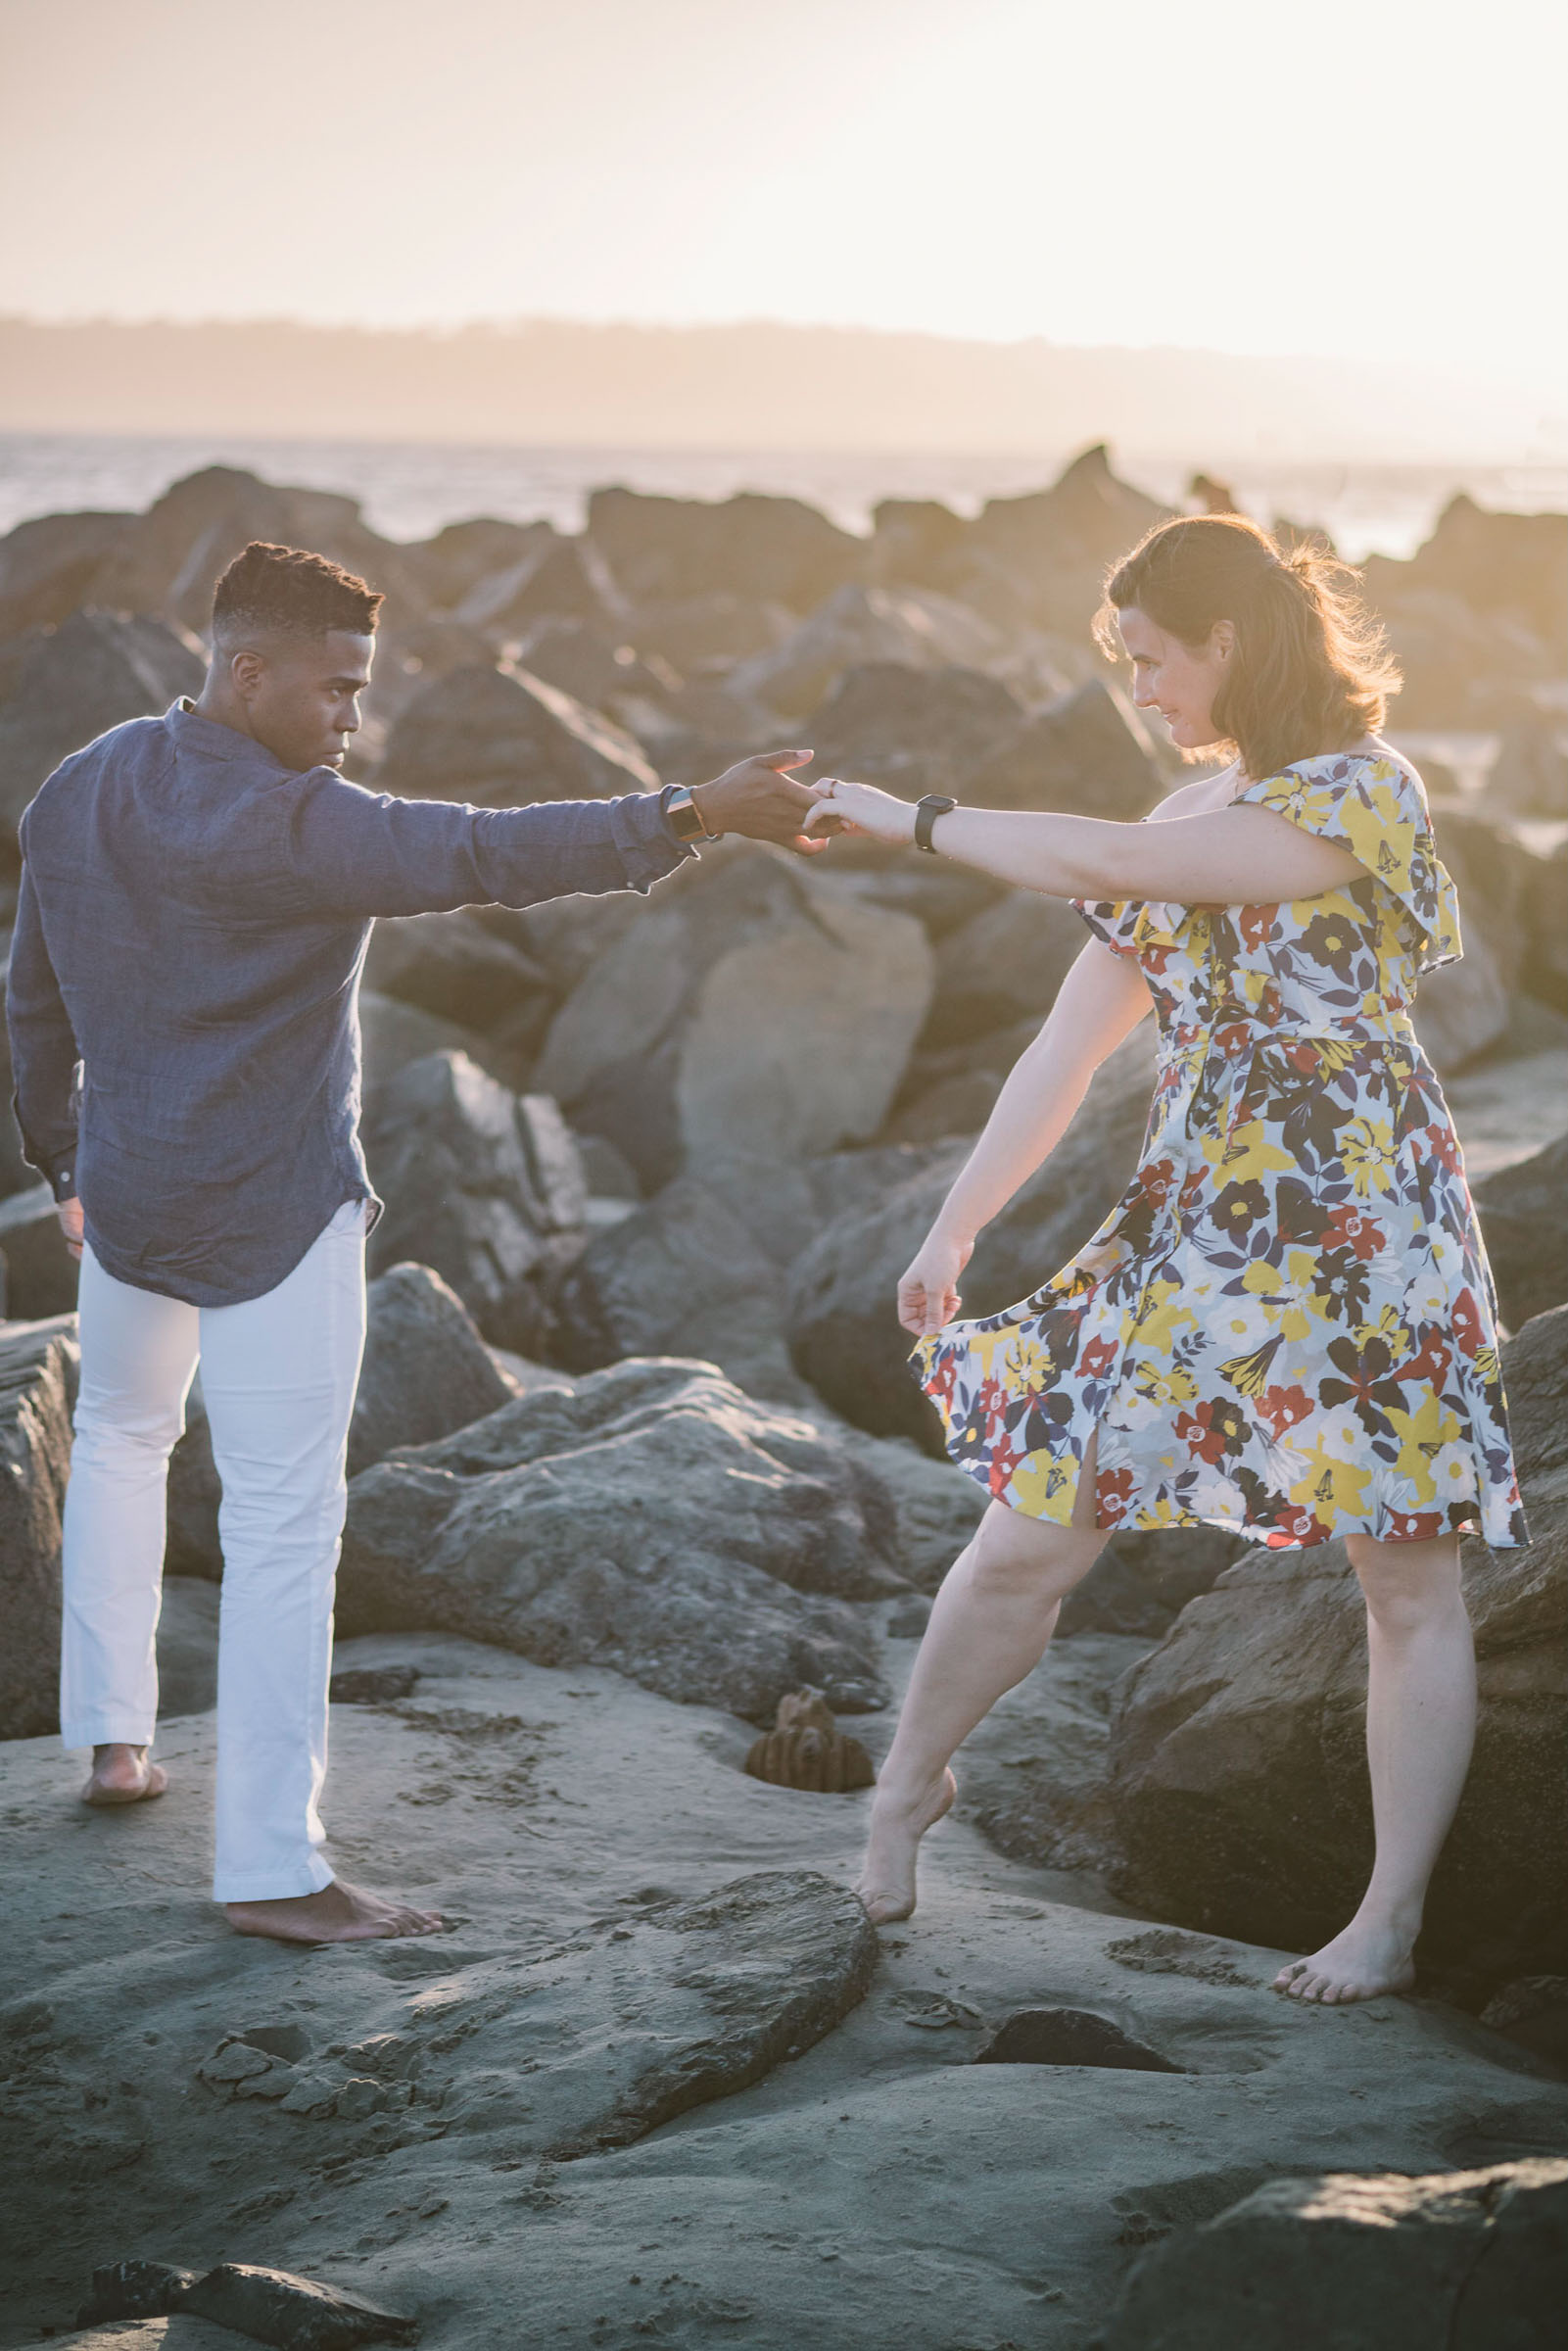 engagement session coronado island sunset san diego california white girl yellow blue red dress african american interracial couple rocks dancing